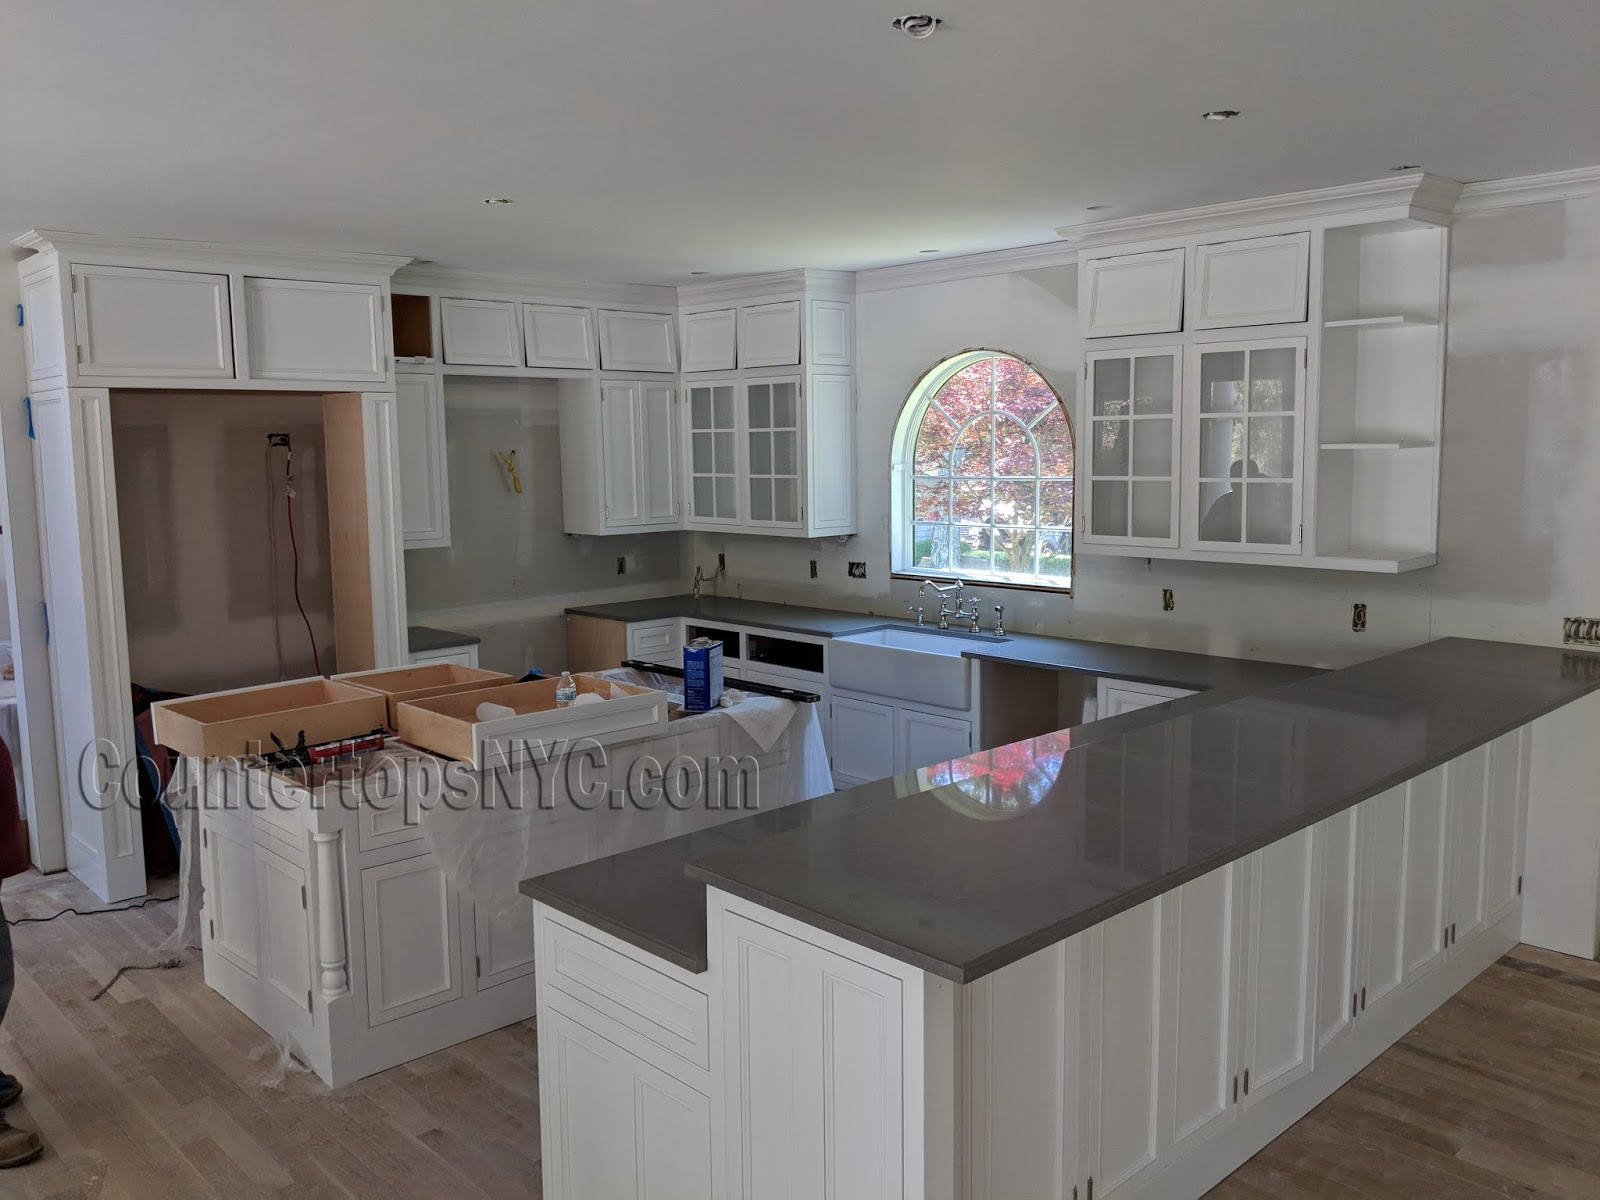 Best Color Quartz With White Cabinets Countertops Nyc